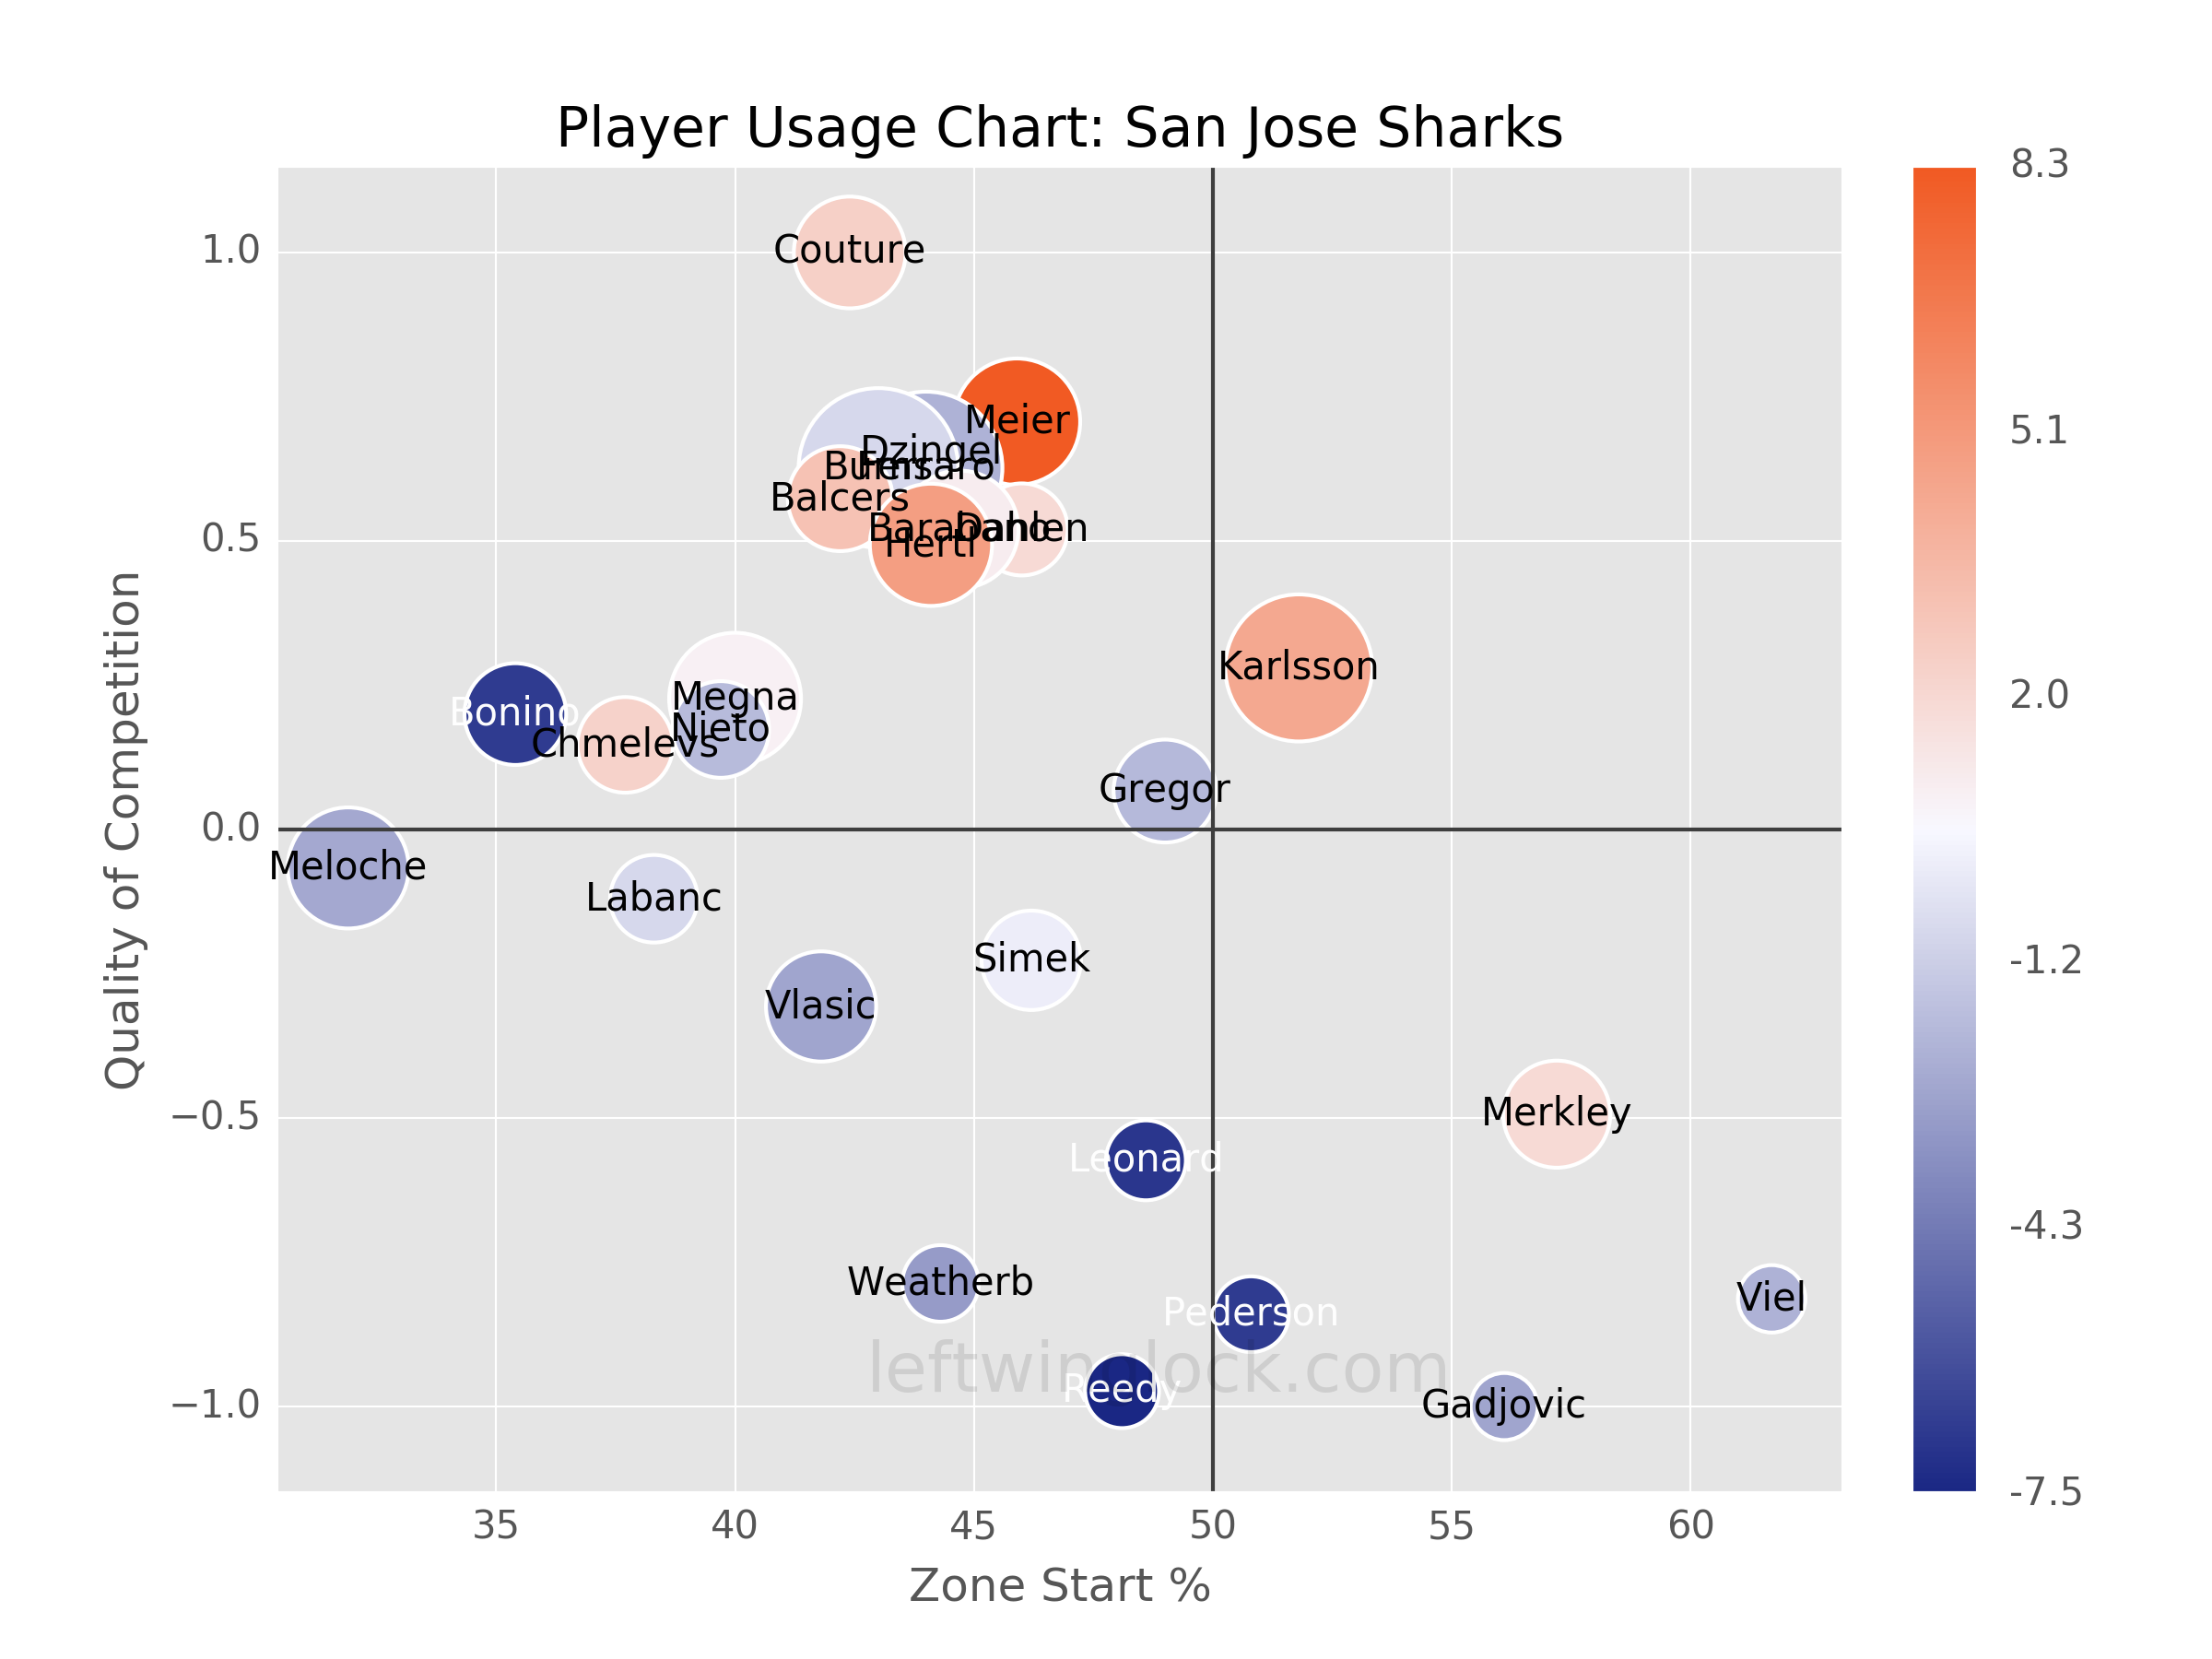 San Jose Sharks Player Usage Chart